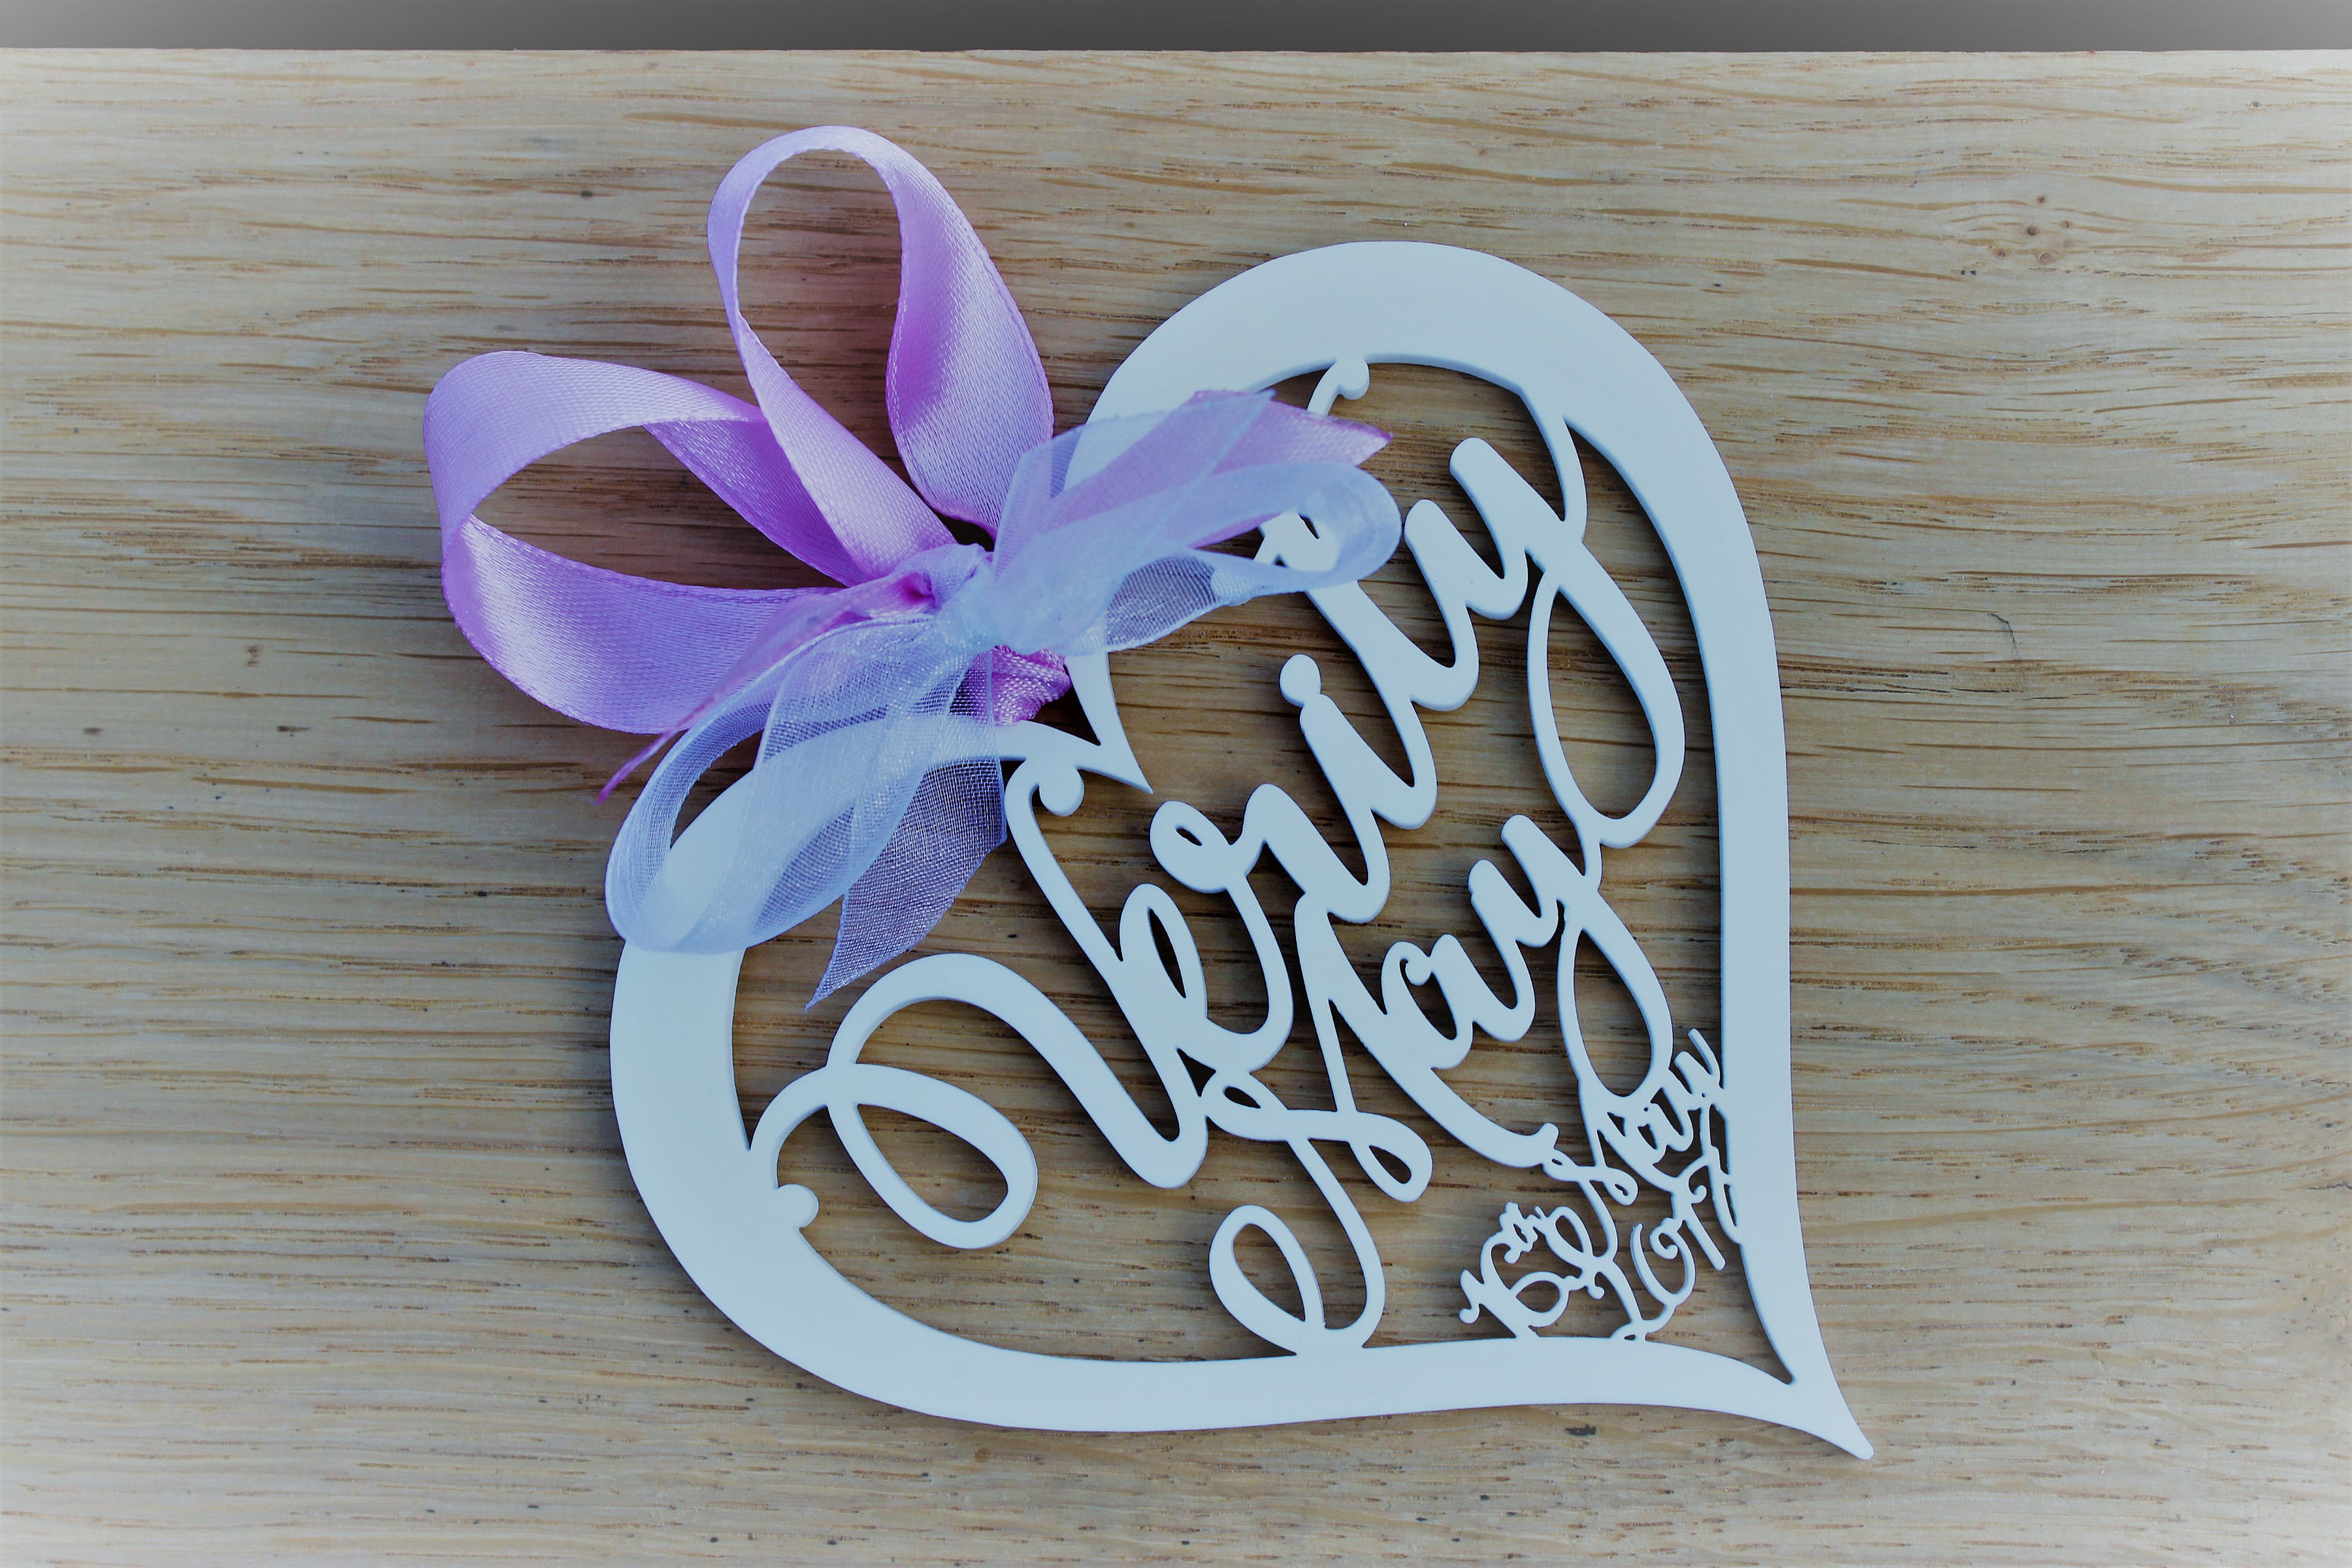 New Baby /Christening / Naming Day Gift, Personalised Laser Cut Hanging Sign / Wall Decoration